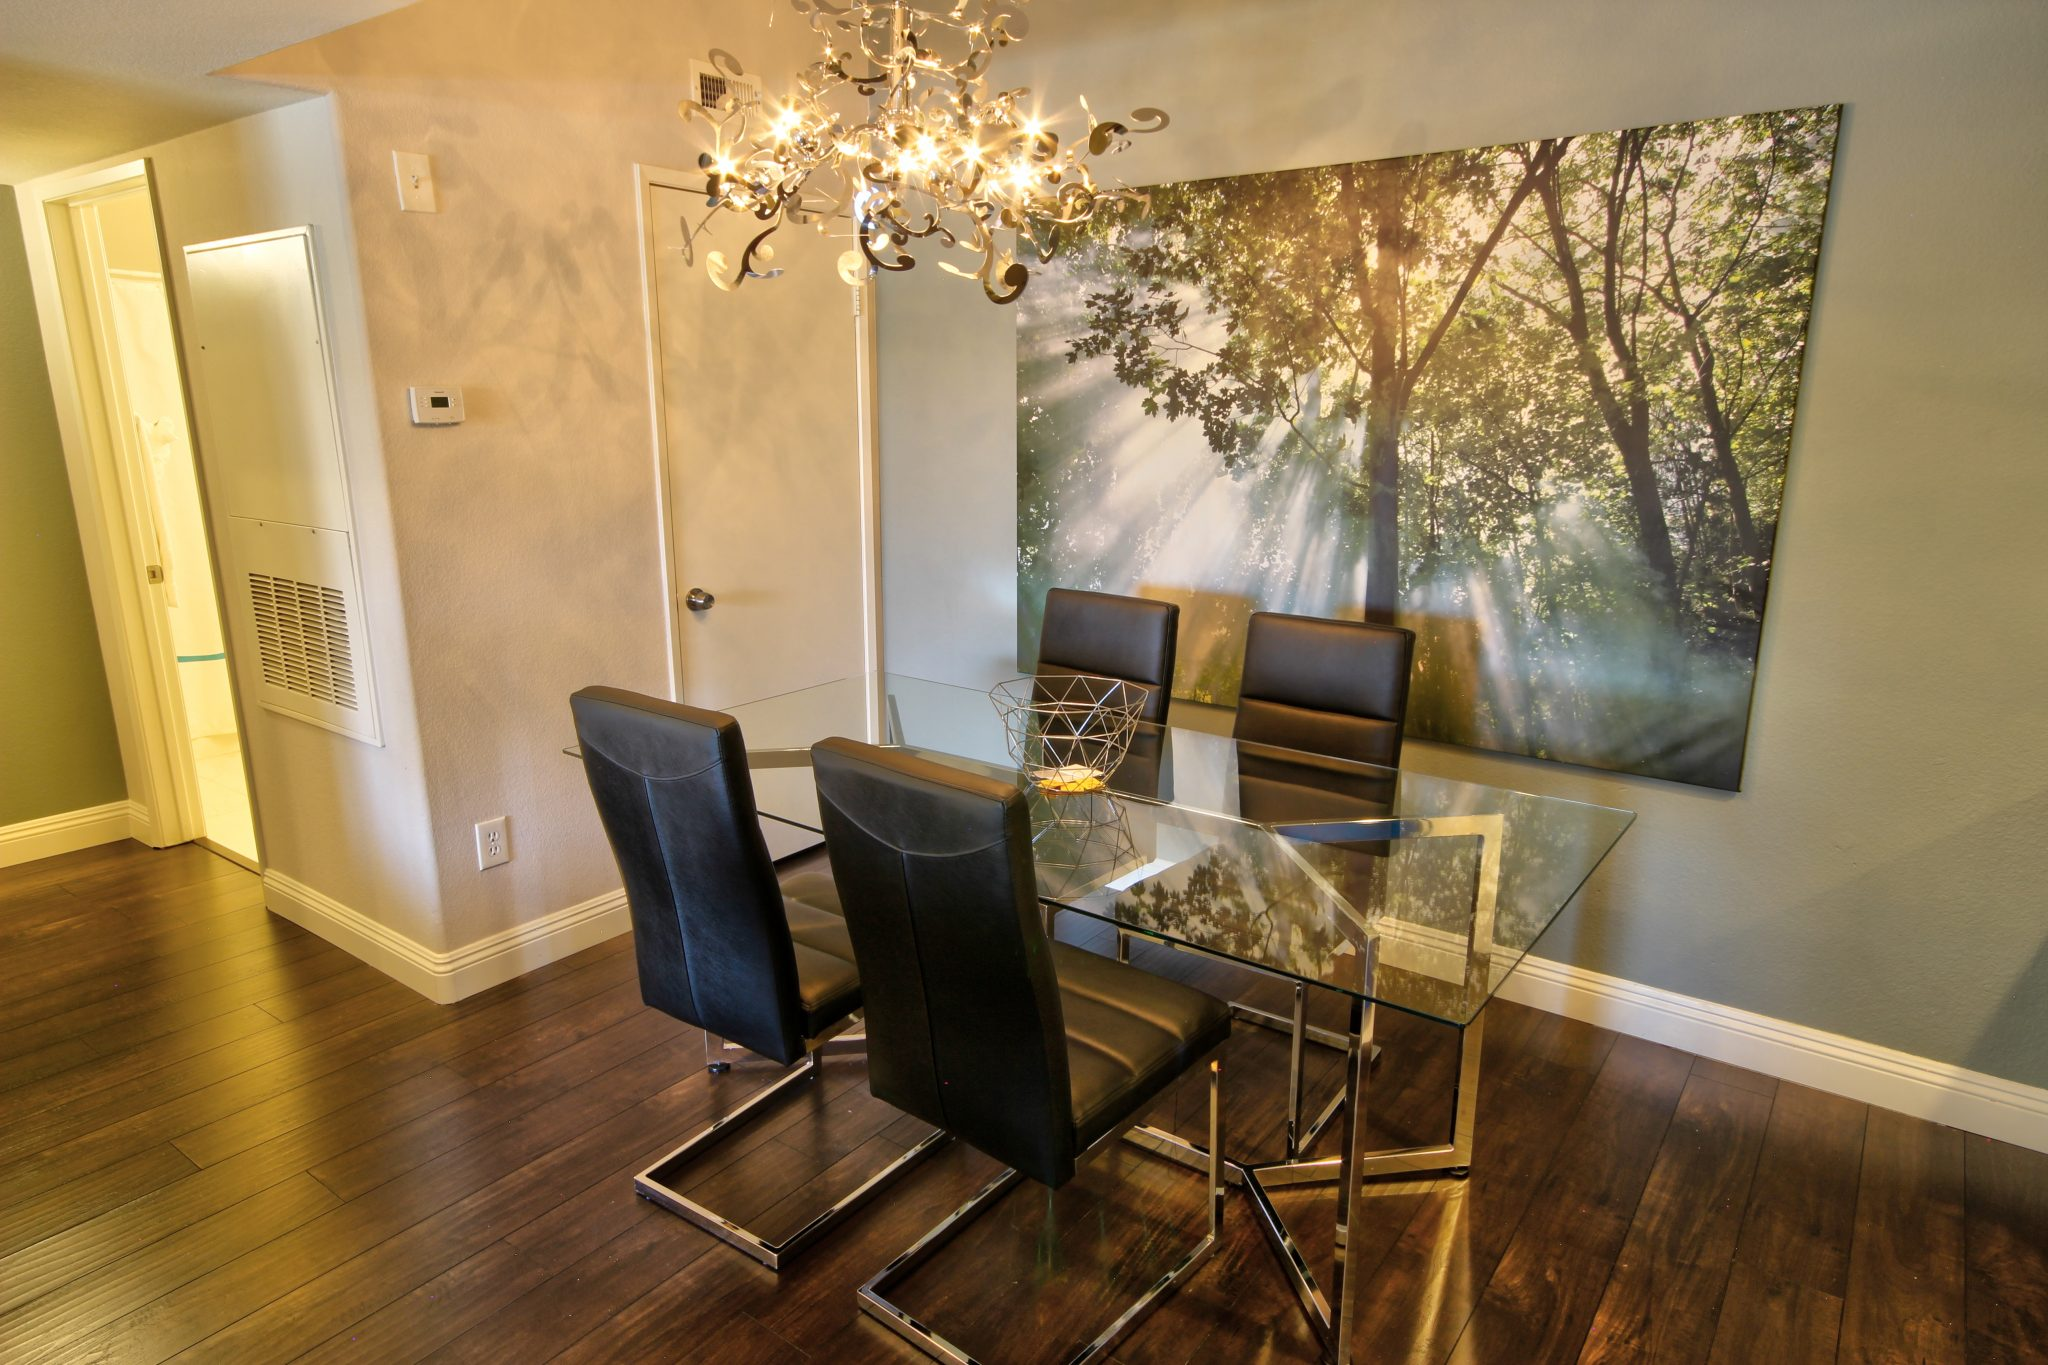 Corporate Apartment Rancho Viejo Las Vegas Wild Flower Dining Table Chair Chandelier 702 Housing